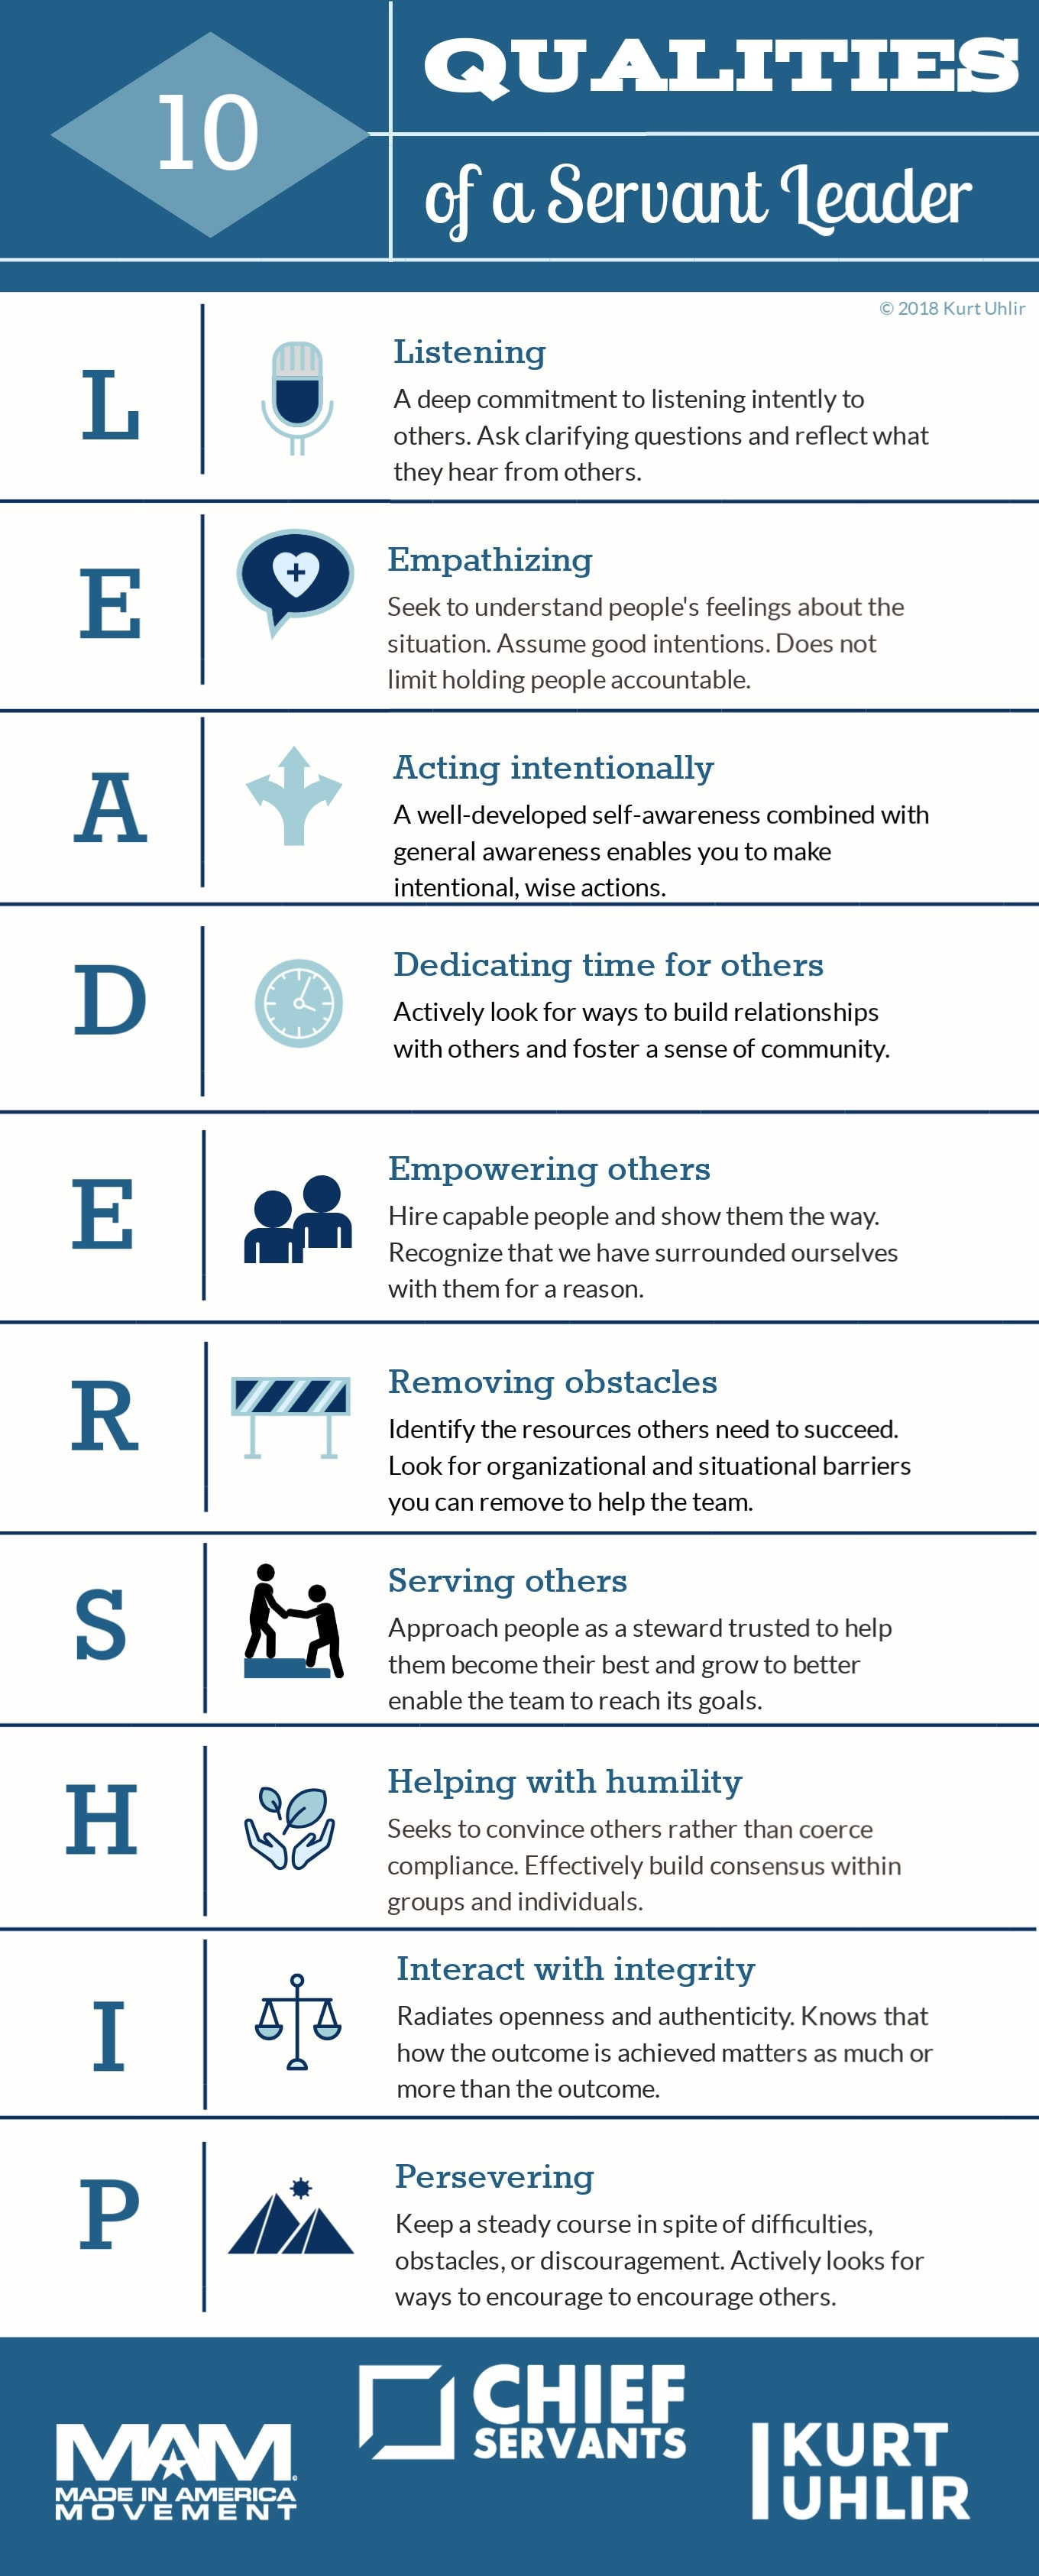 https://kurtuhlir.com/wp-content/uploads/2018/07/10-Qualities-of-a-Servant-Leader-Infographic.jpg